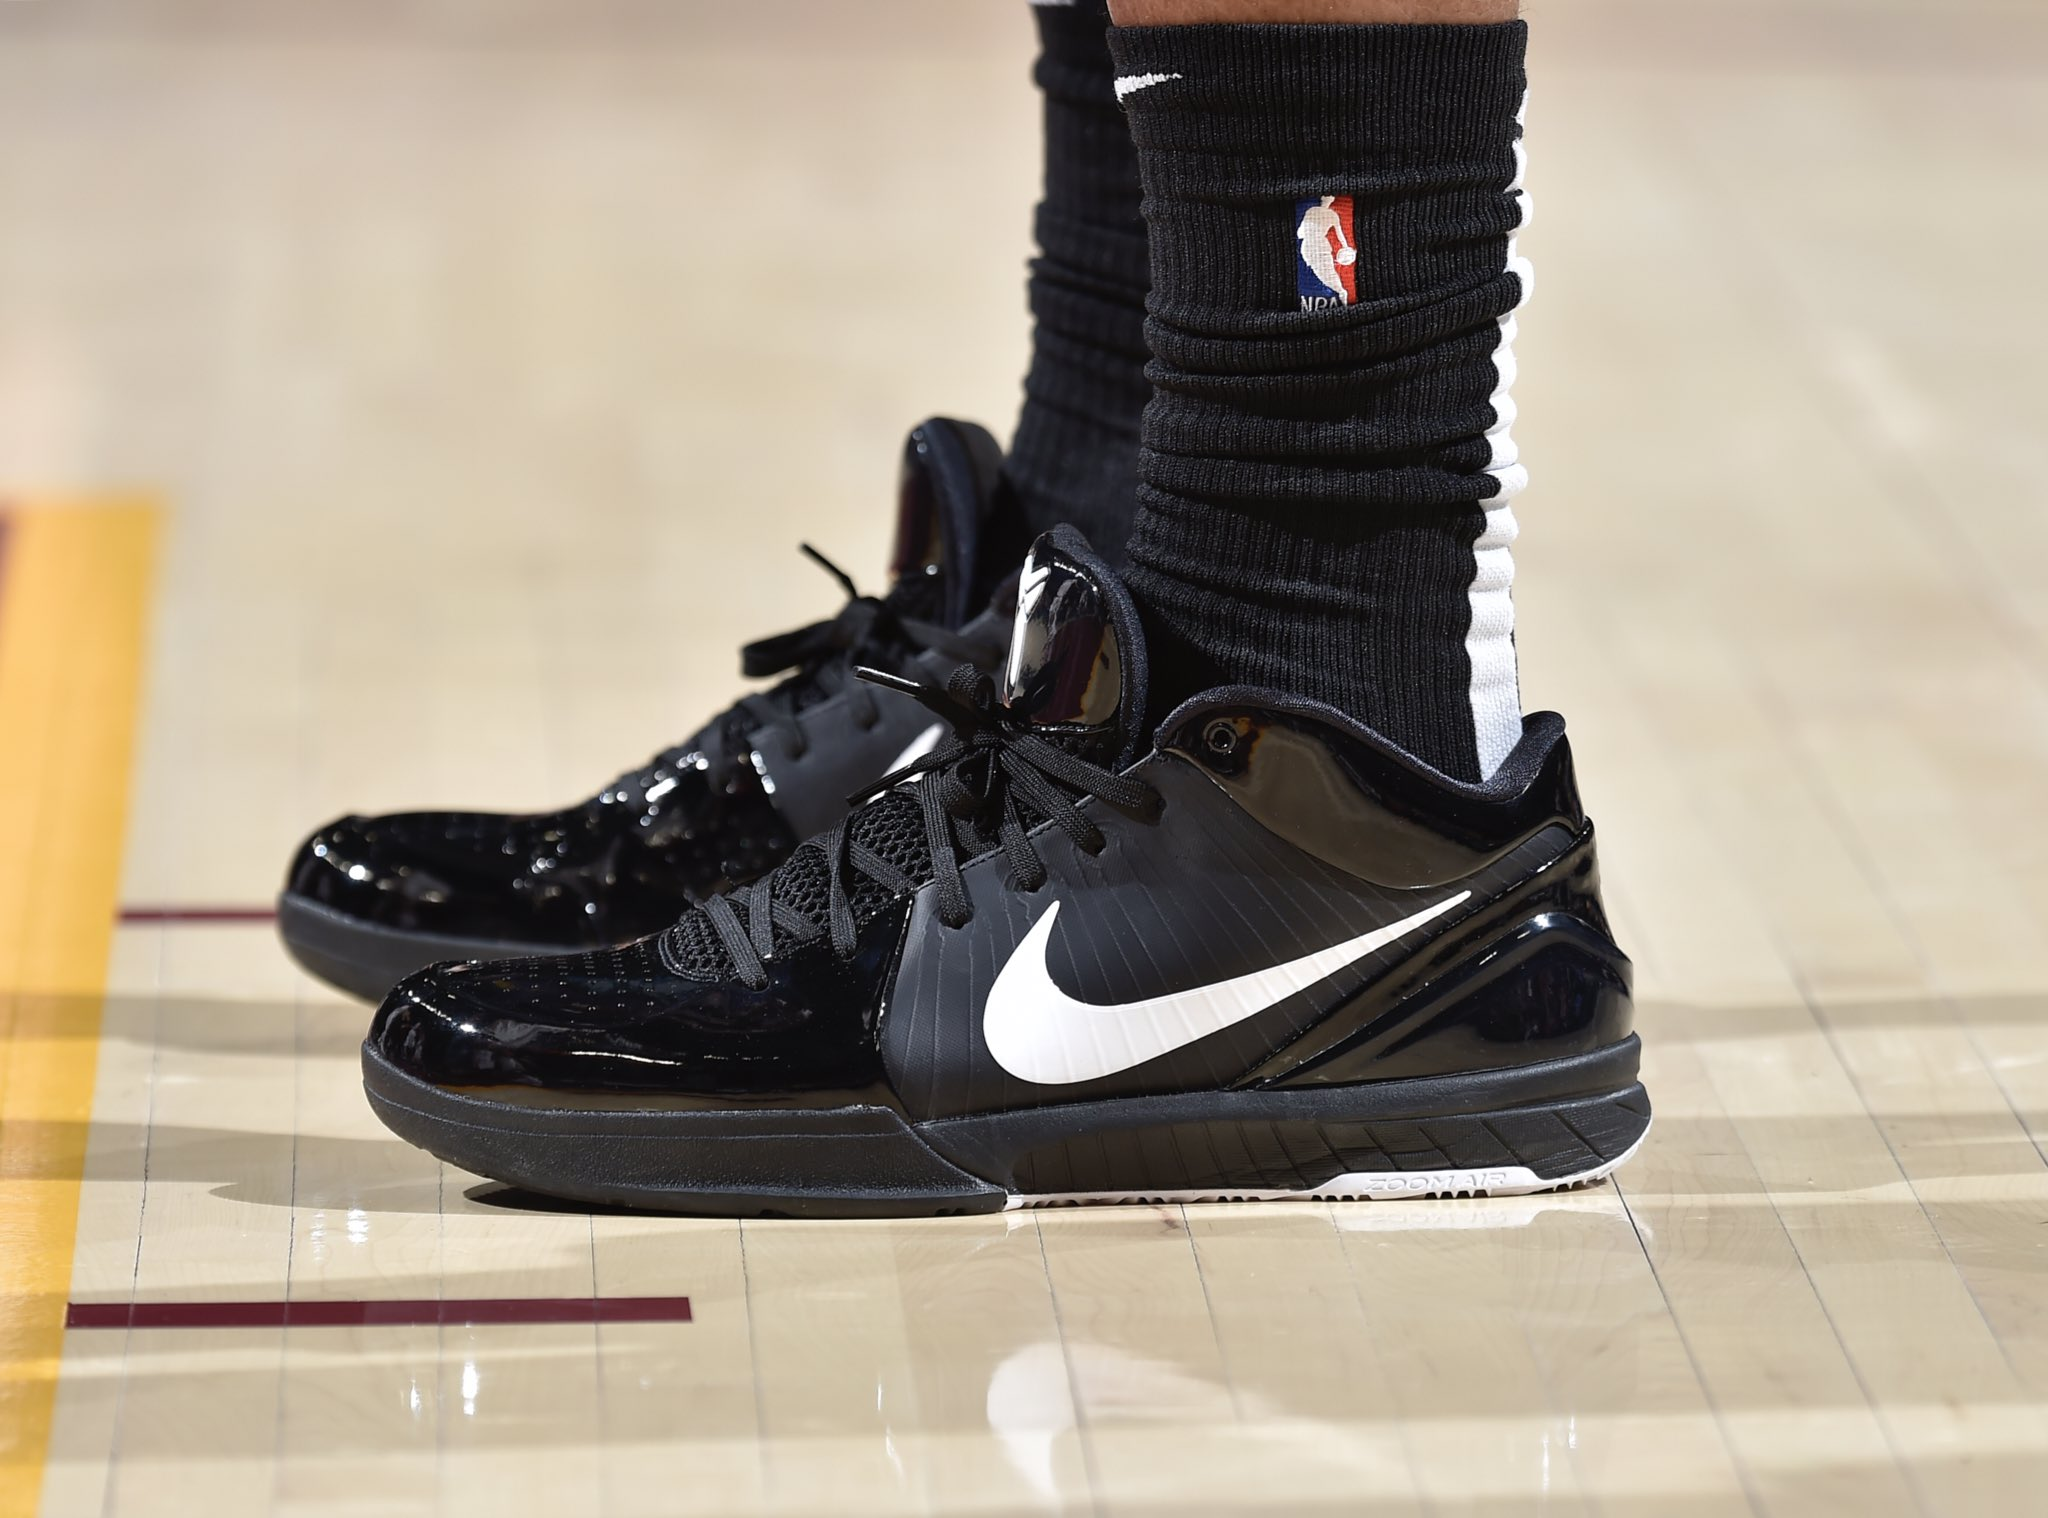 DeMar DeRozan in Nike Kobe 4 Protro - San Antonio Spurs vs. Cleveland Cavaliers | April 7, 201914 Points9 Assists3 Rebounds1 Steal4-9 Shooting